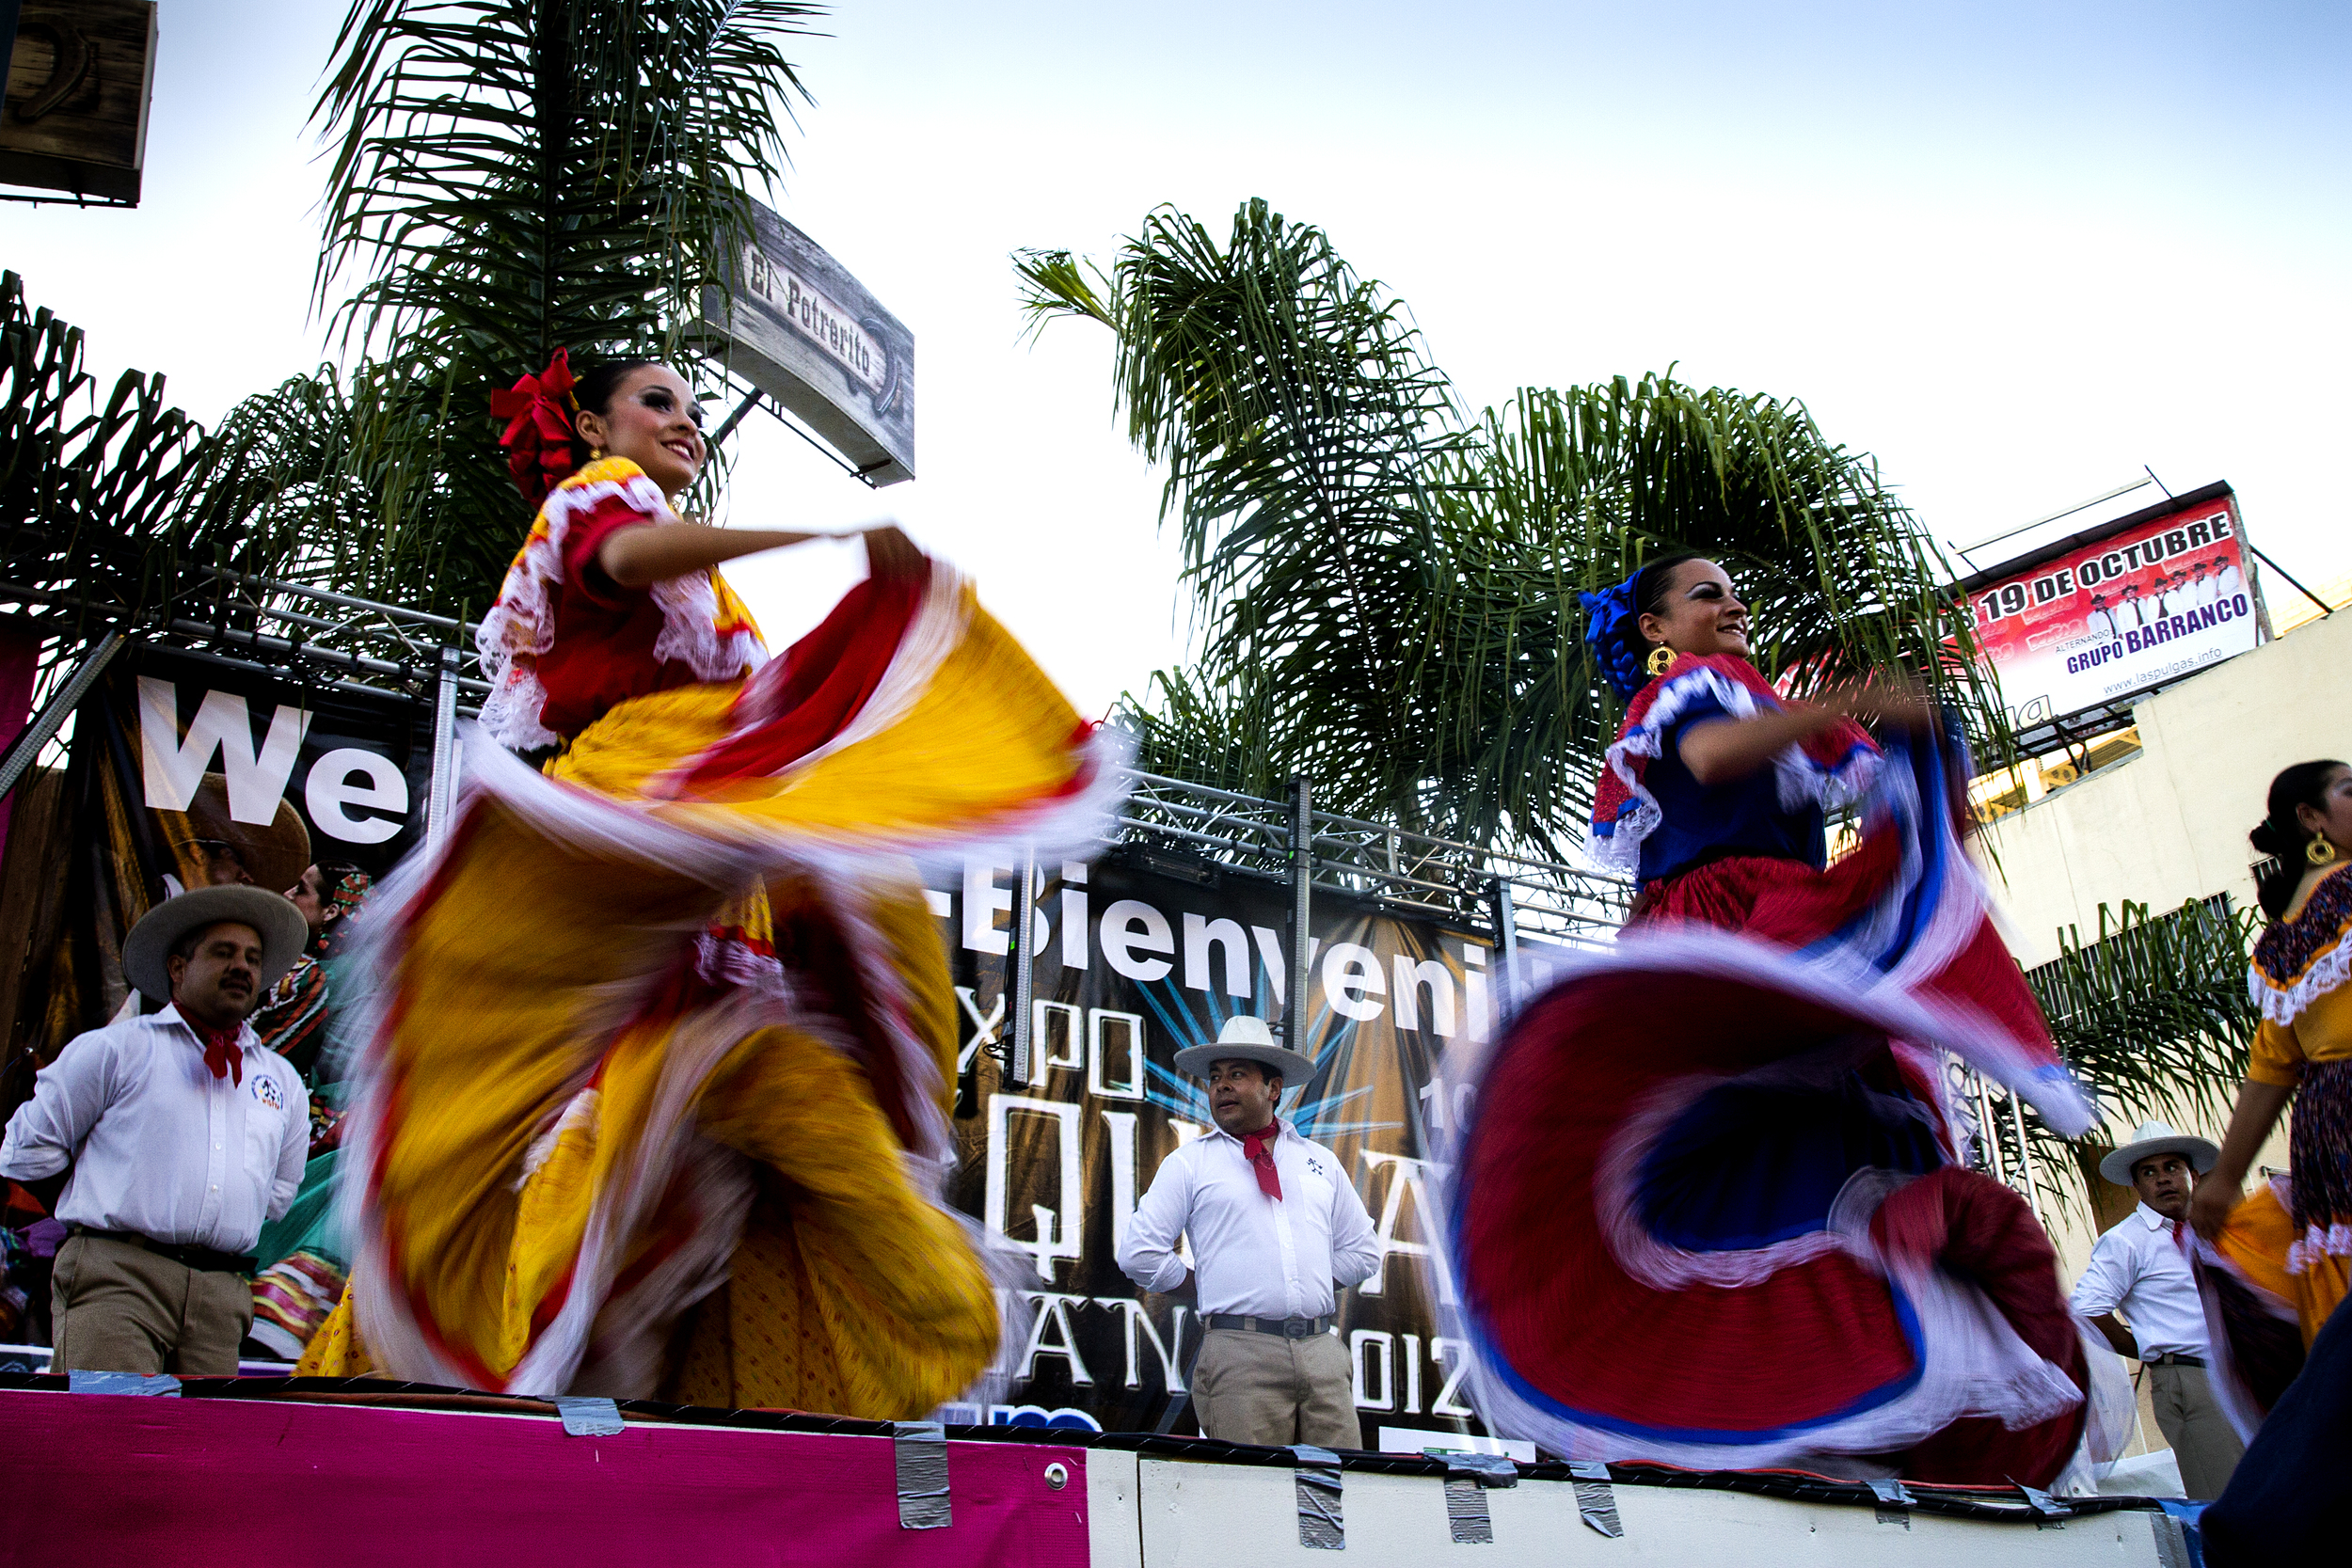 Folklorico dancers at the tequila festival